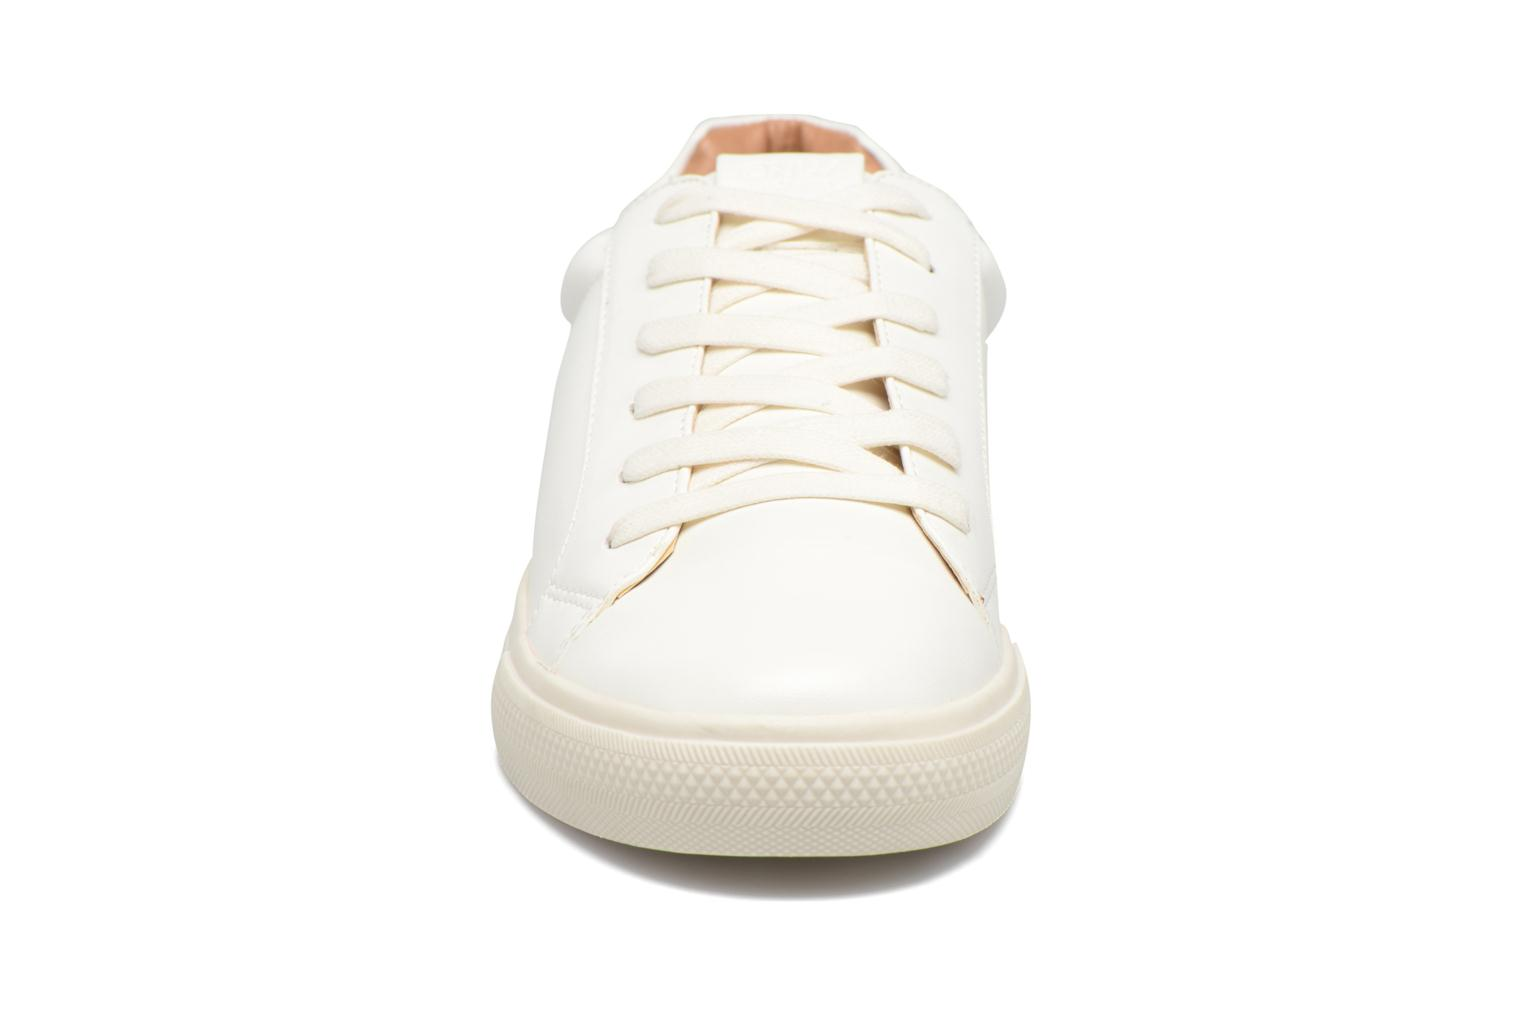 Baskets ONLY Sira skye nude sneaker Blanc vue portées chaussures